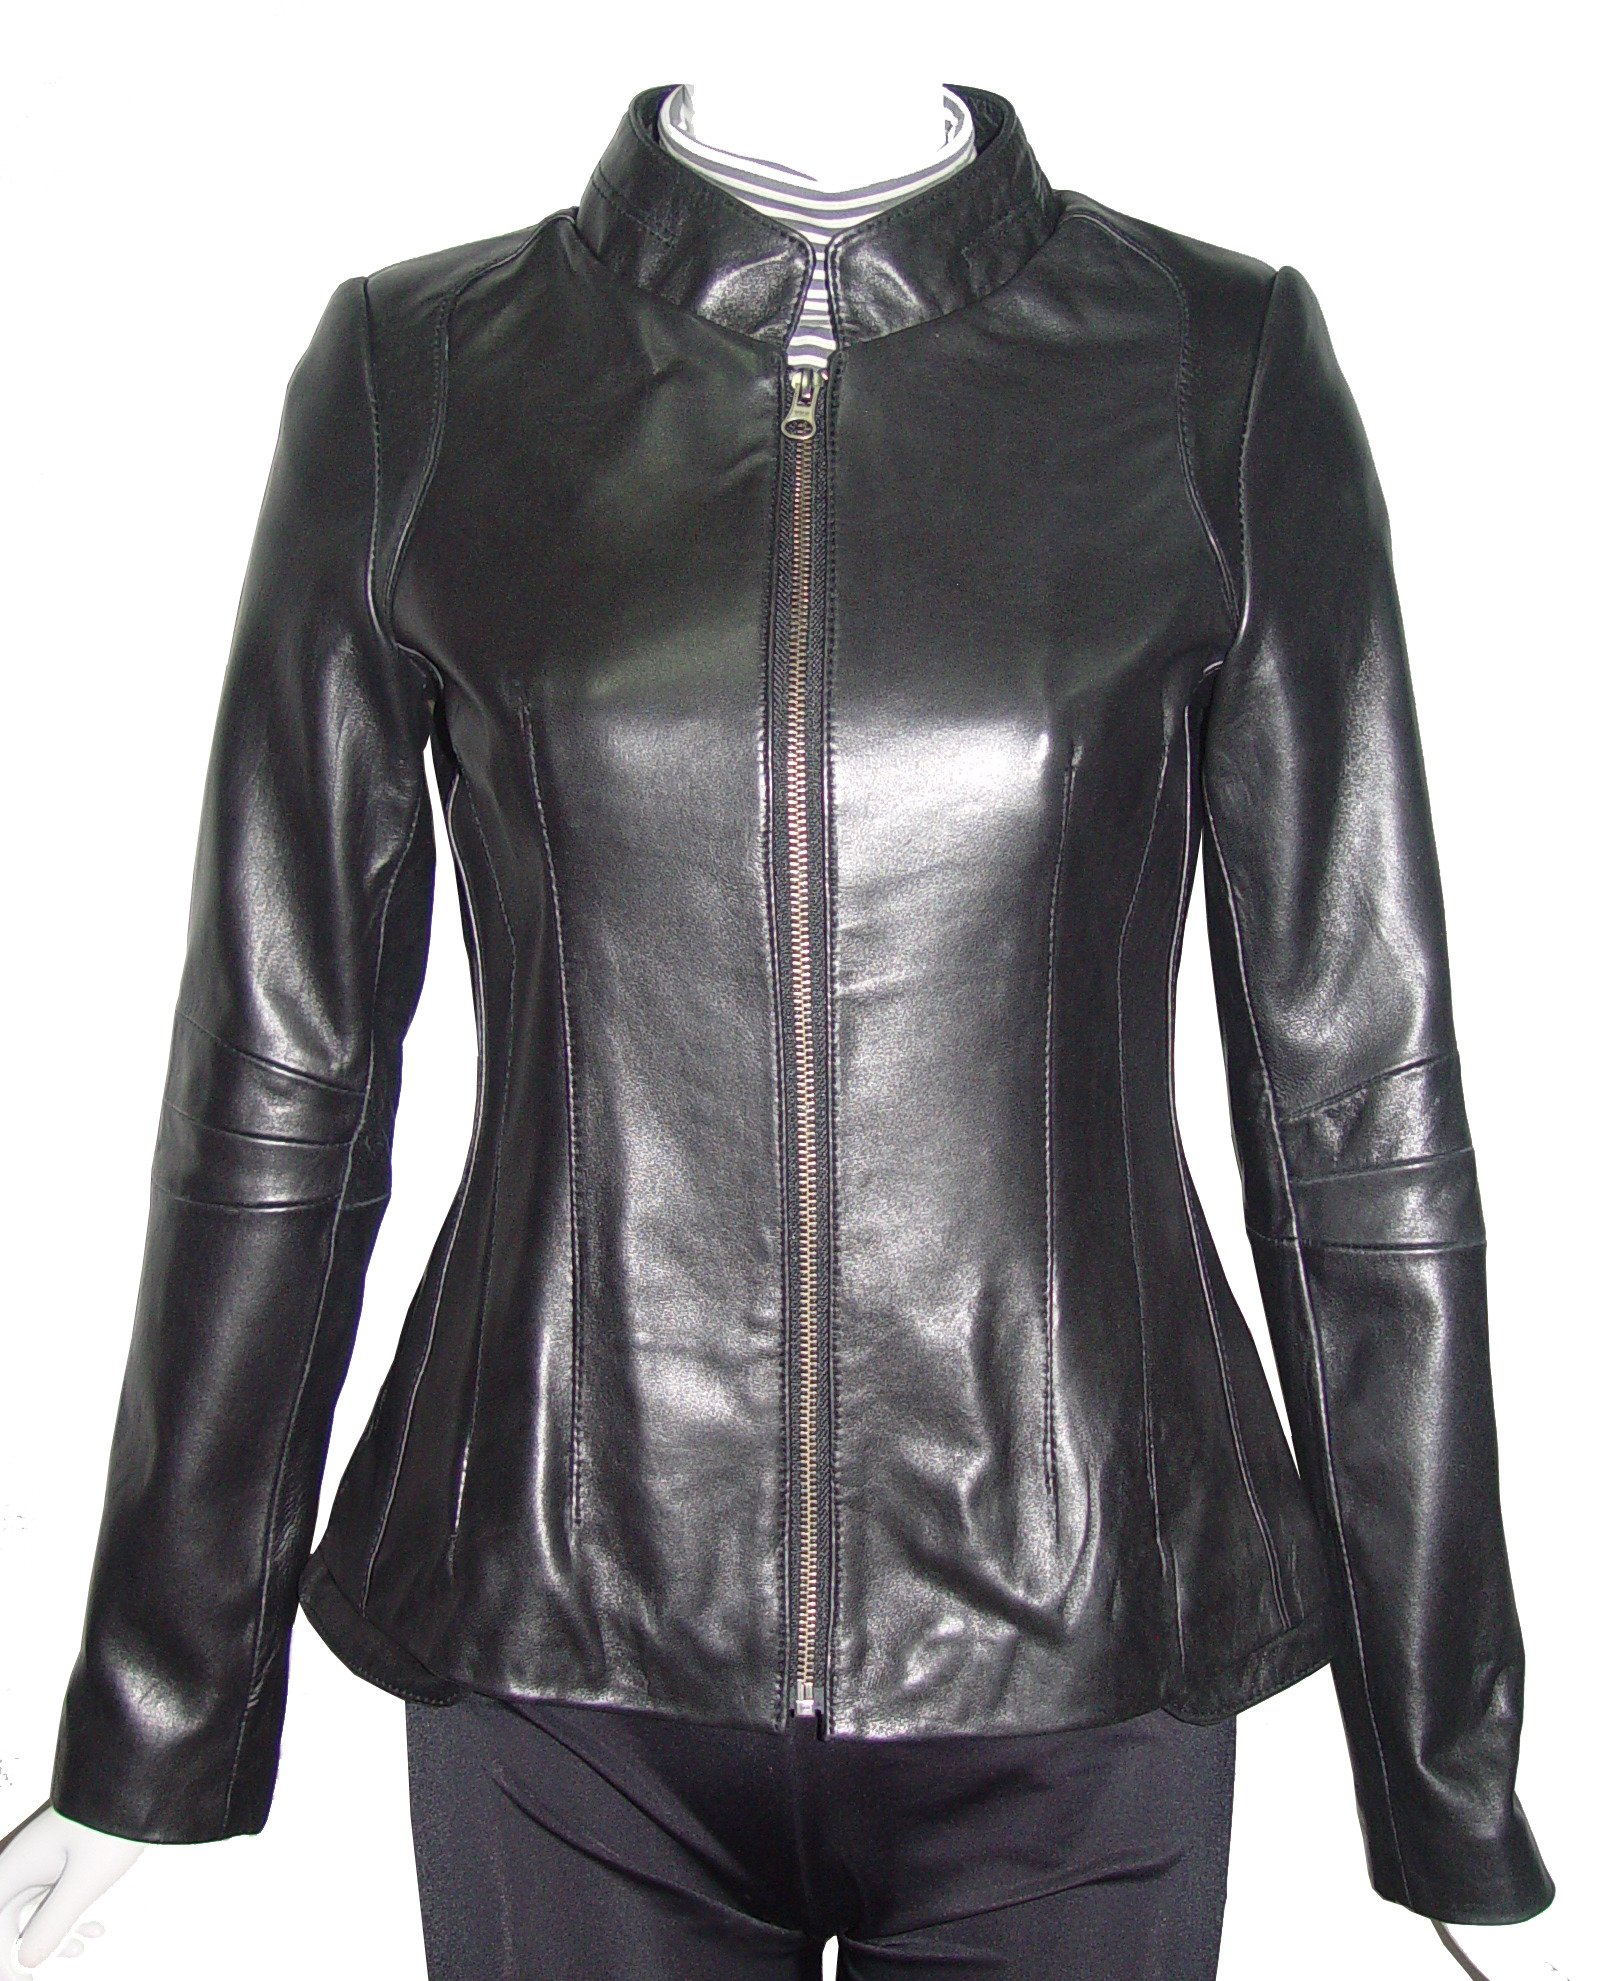 Nettailor 4162 Real Leather Jackets Best Cool Stylish Expensive Lining